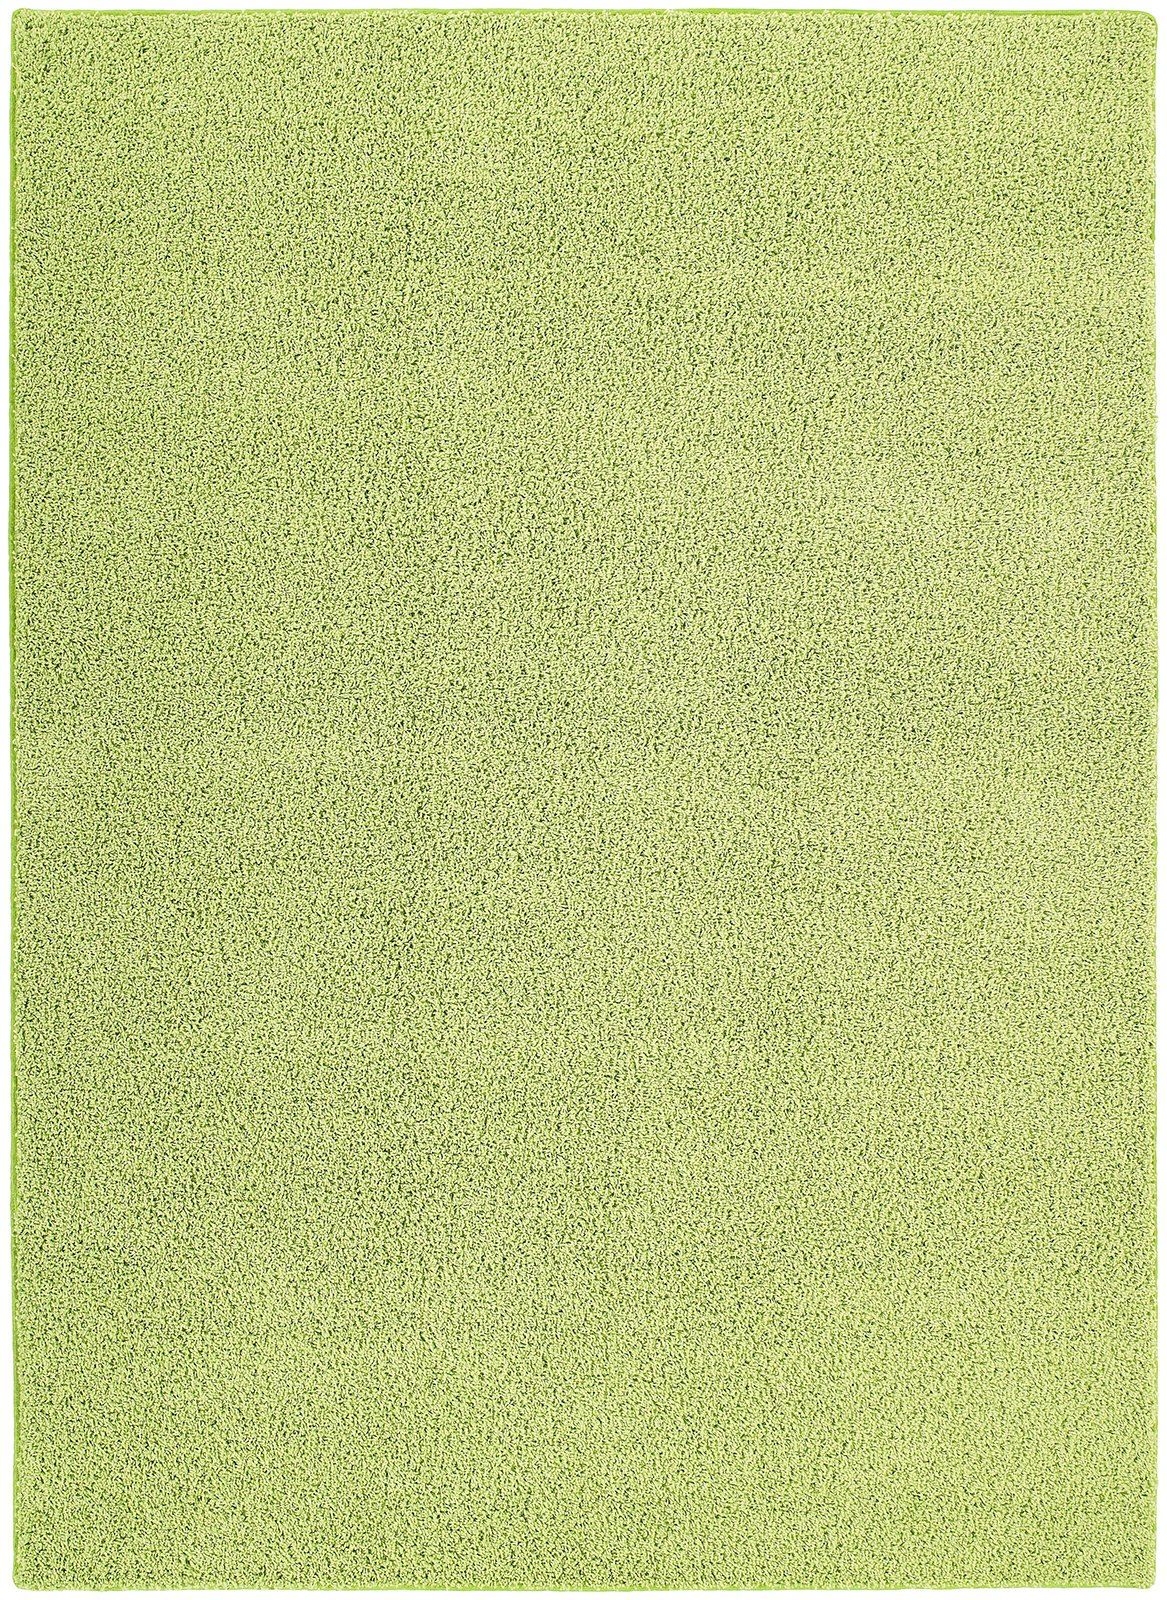 Garland Rug Shazaam Area Rug, 5-Feet by 8-Feet, Mod Green